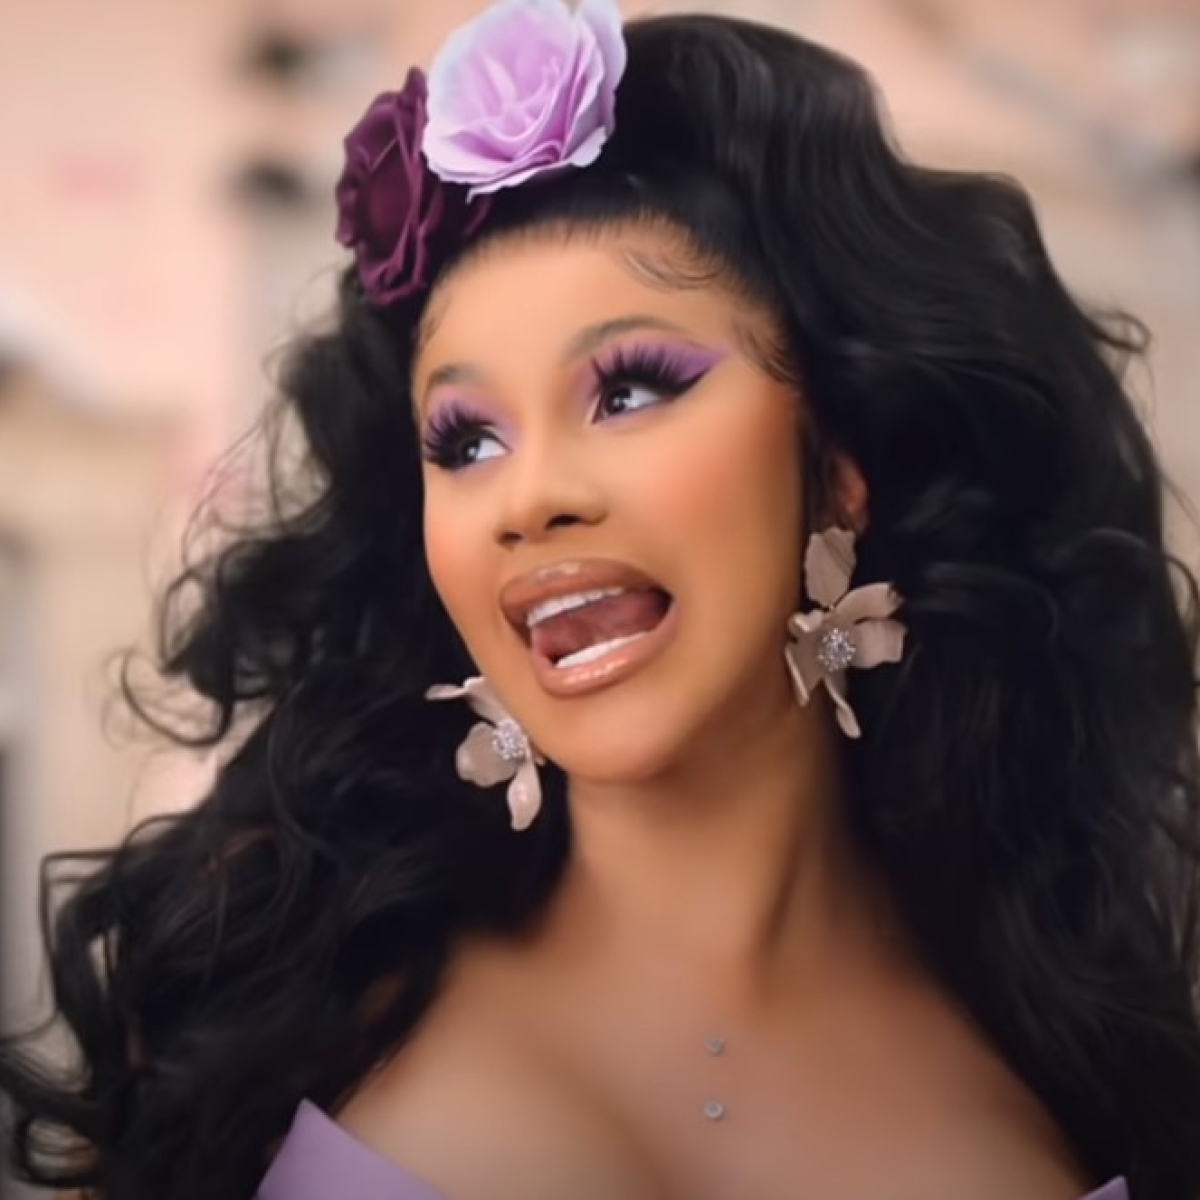 Watch: Rapper Cardi B plays Lata Mangeshkar's 1981 song 'Kaliyon Ka Chaman' in her latest video